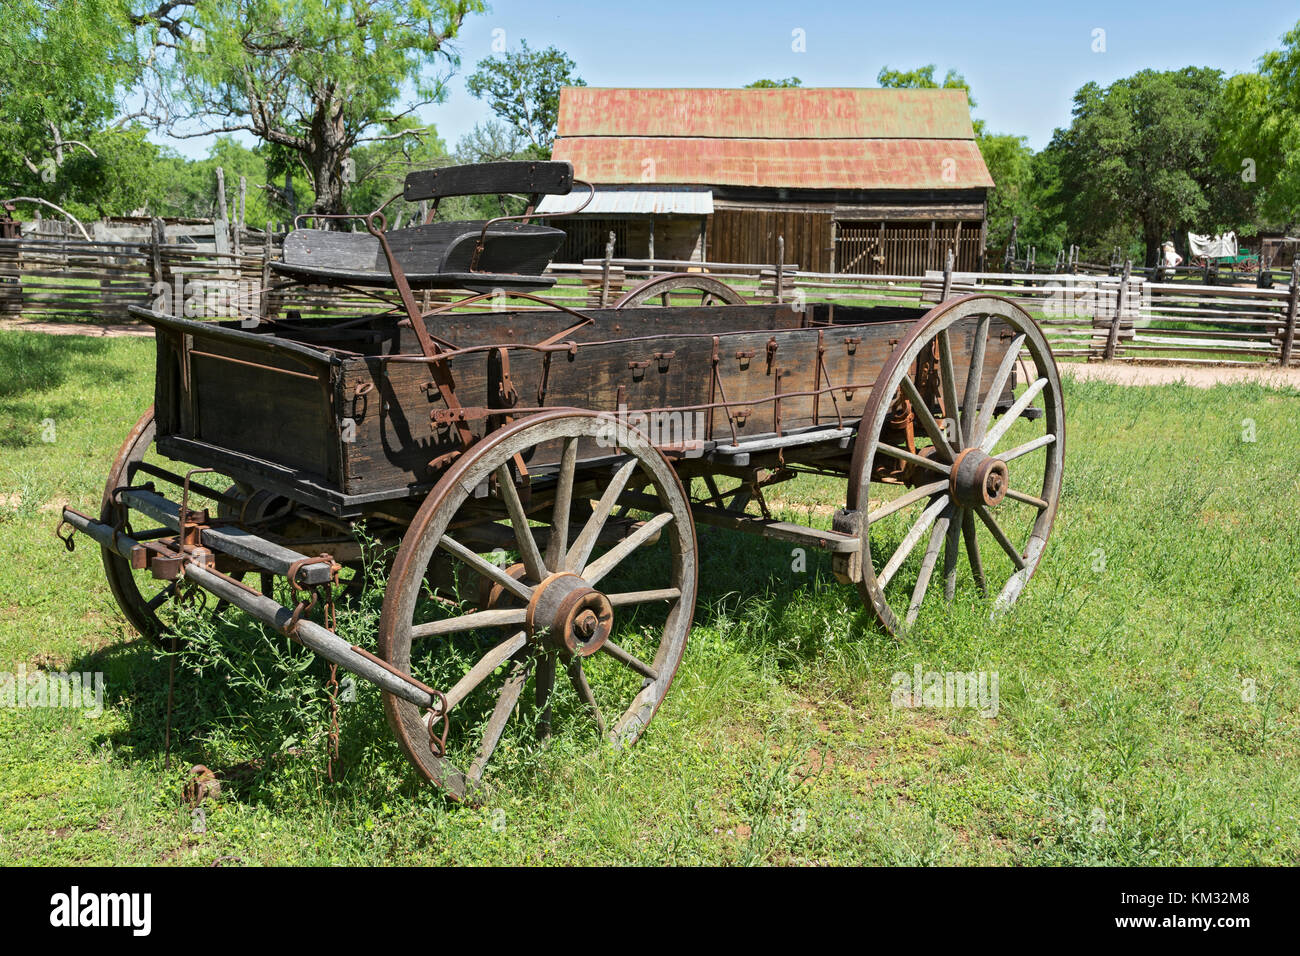 Texas, Stonewall, LBJ State Park and Historic Site, Sauer-Beckmann, Living History Farm, circa 1915-1918, wooden - Stock Image